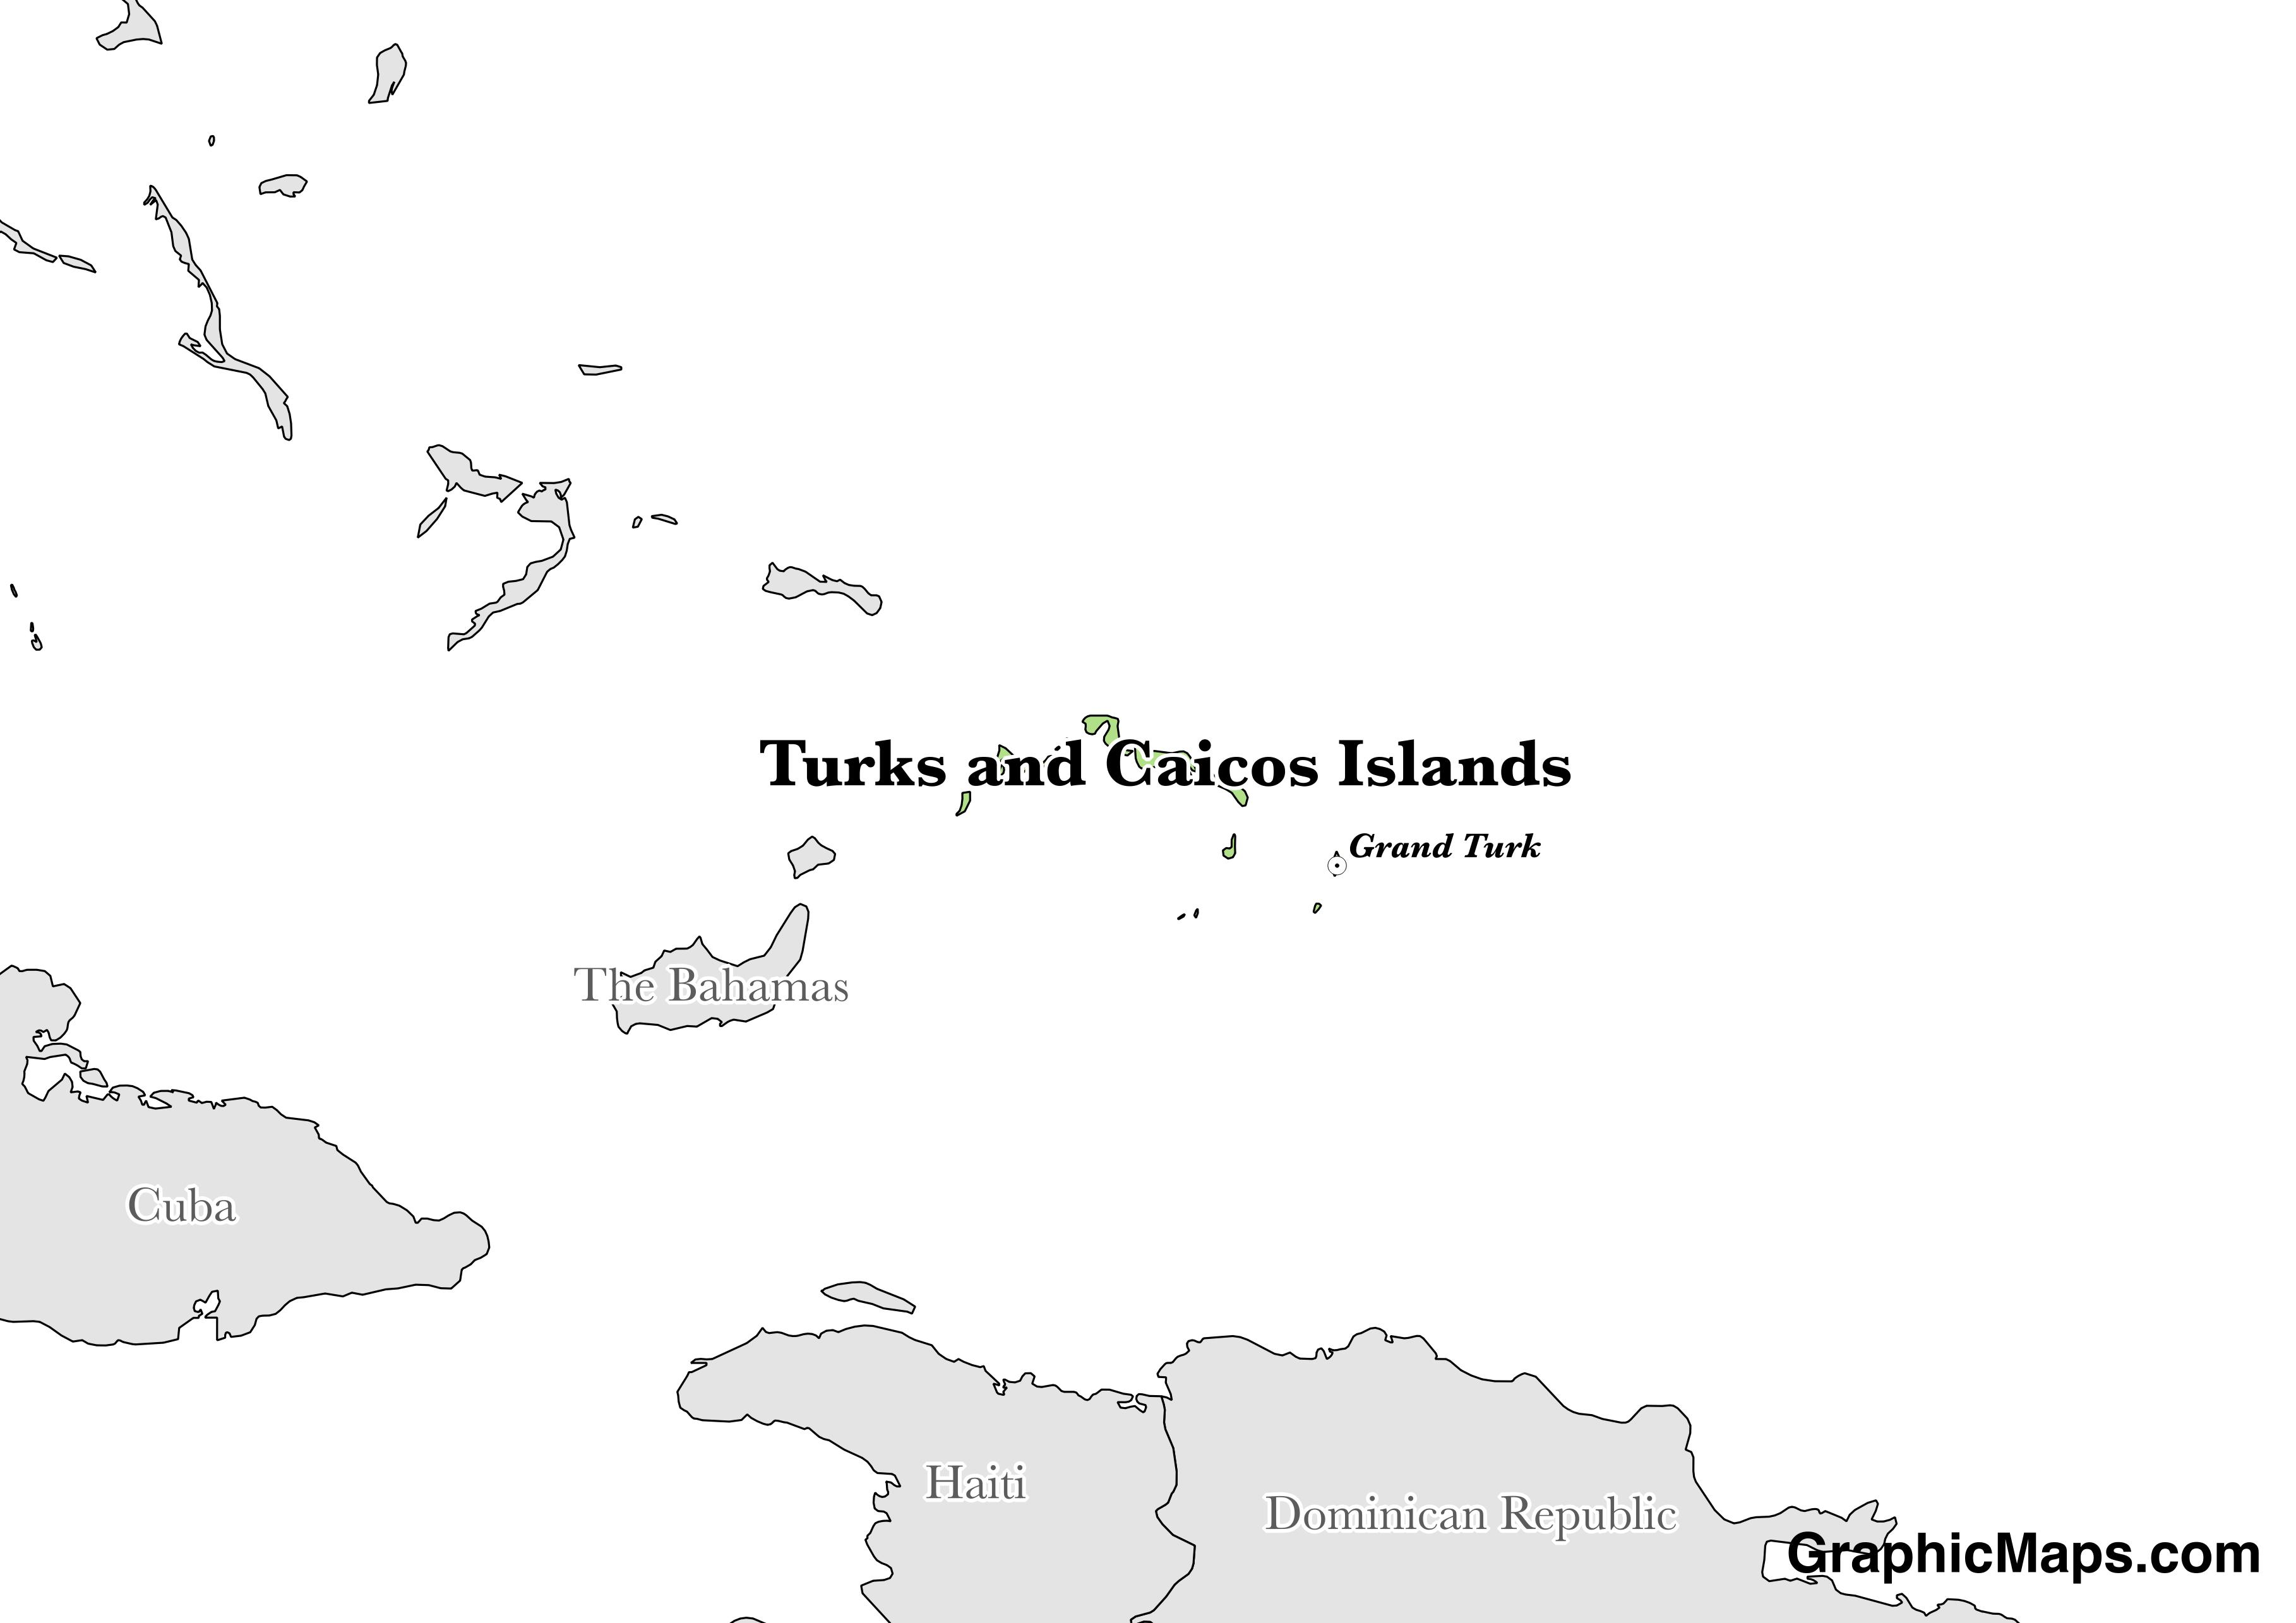 Map showing the location of Turks and Caicos Islands